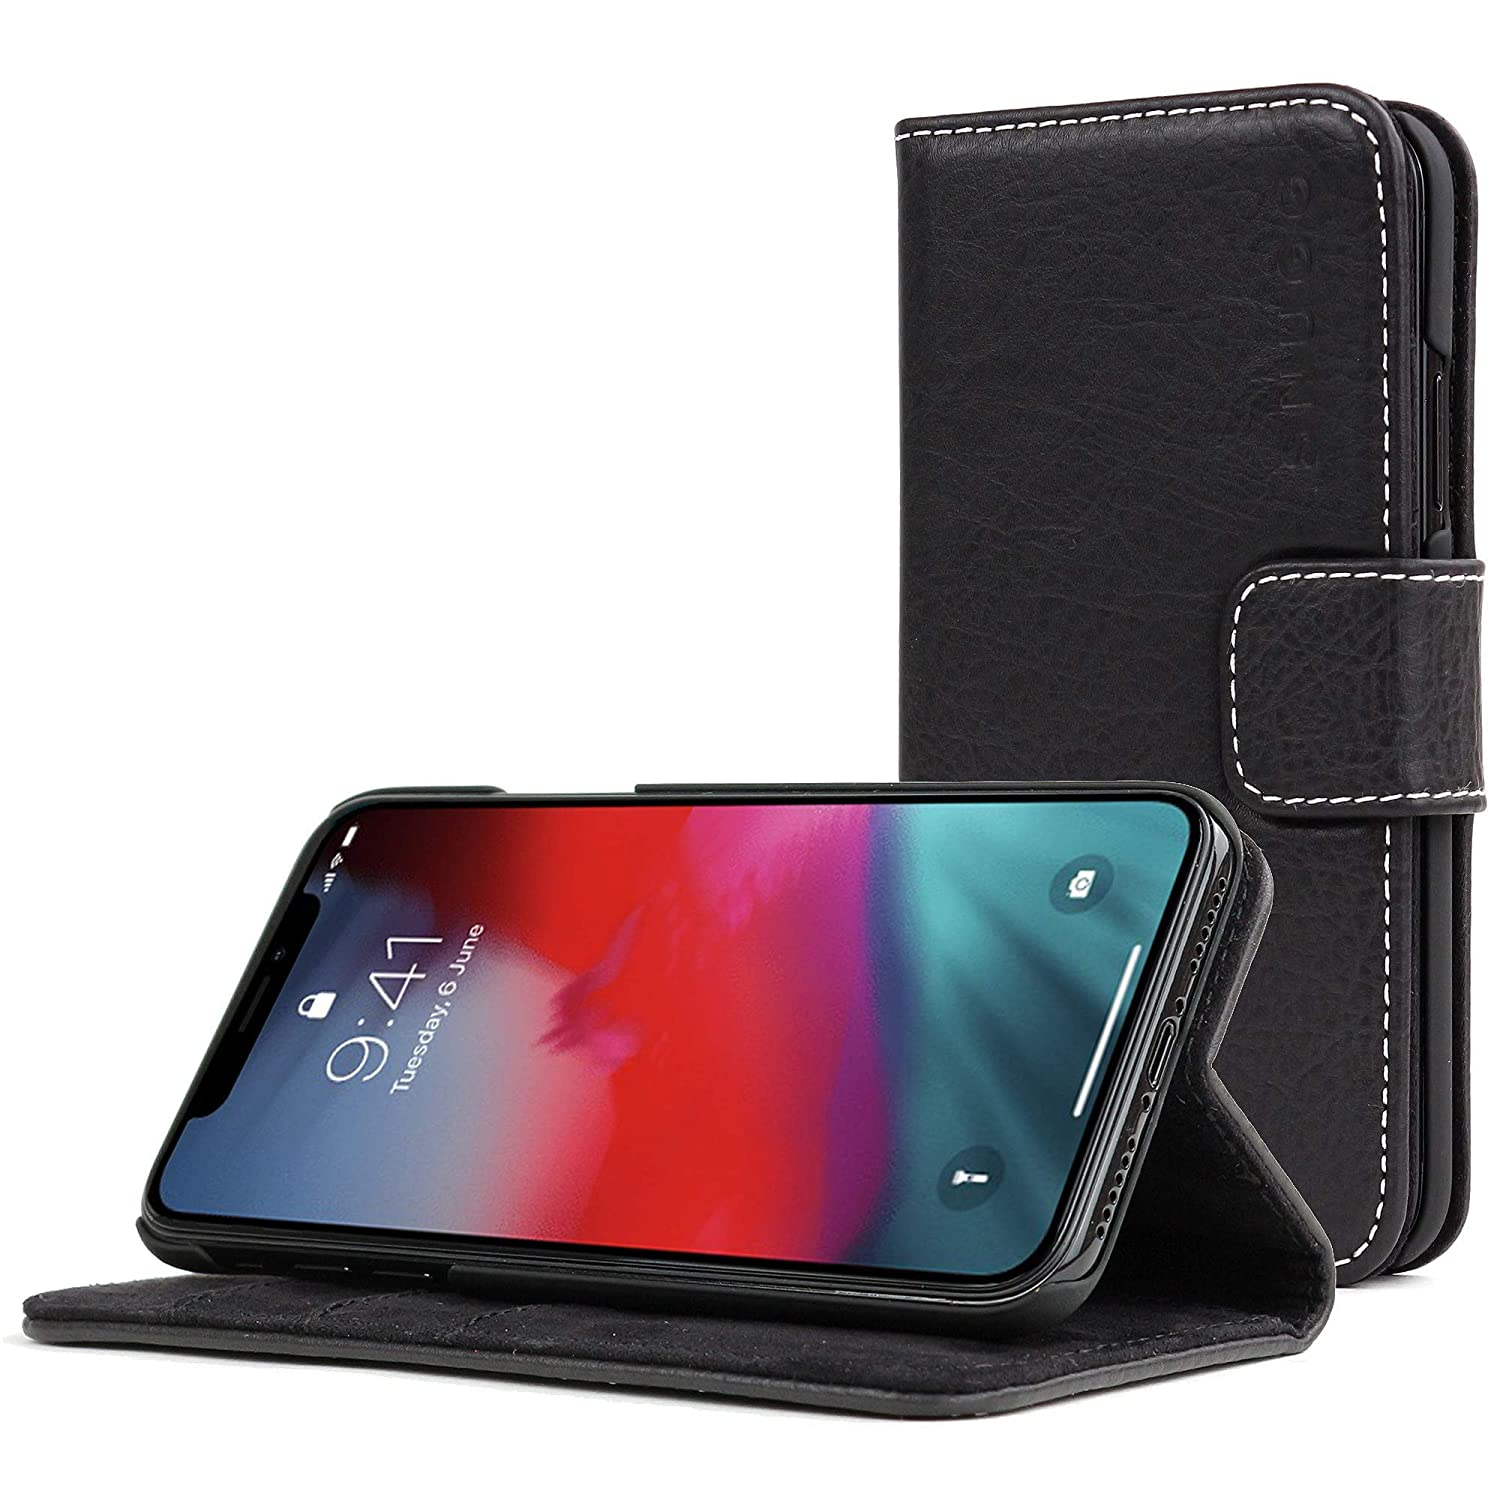 81082e9f2cc Snugg iPhone Xs Max Case, Snugg Blackest-Black Leather Flip Case [Card  Slots] Executive Apple iPhone Xs Plus Wallet Case Cover and Stand Legacy  Series ...